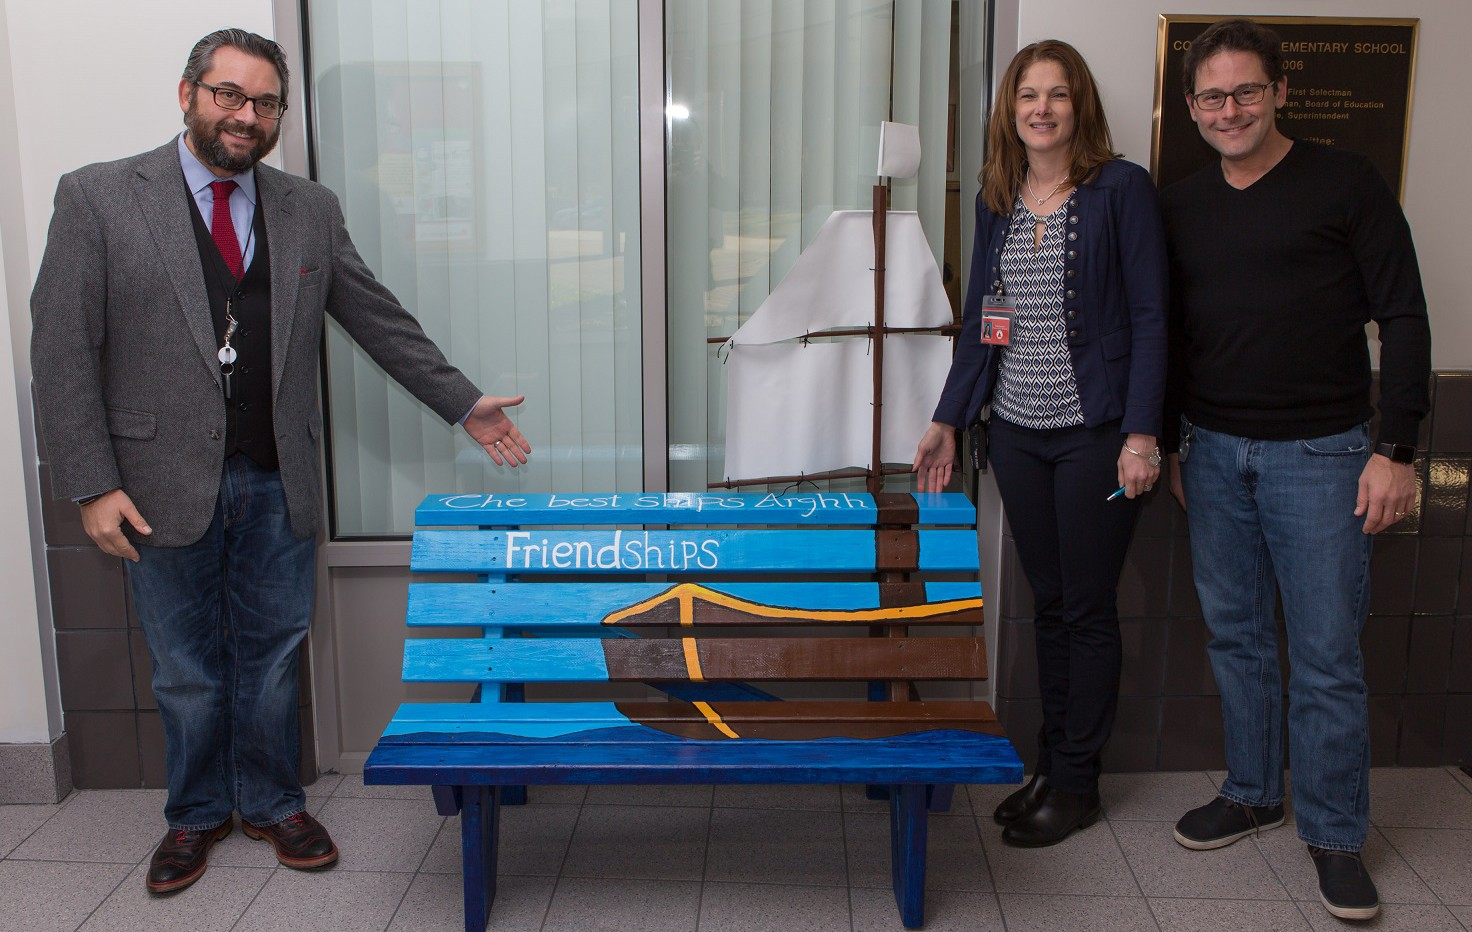 buddy bench for friendship